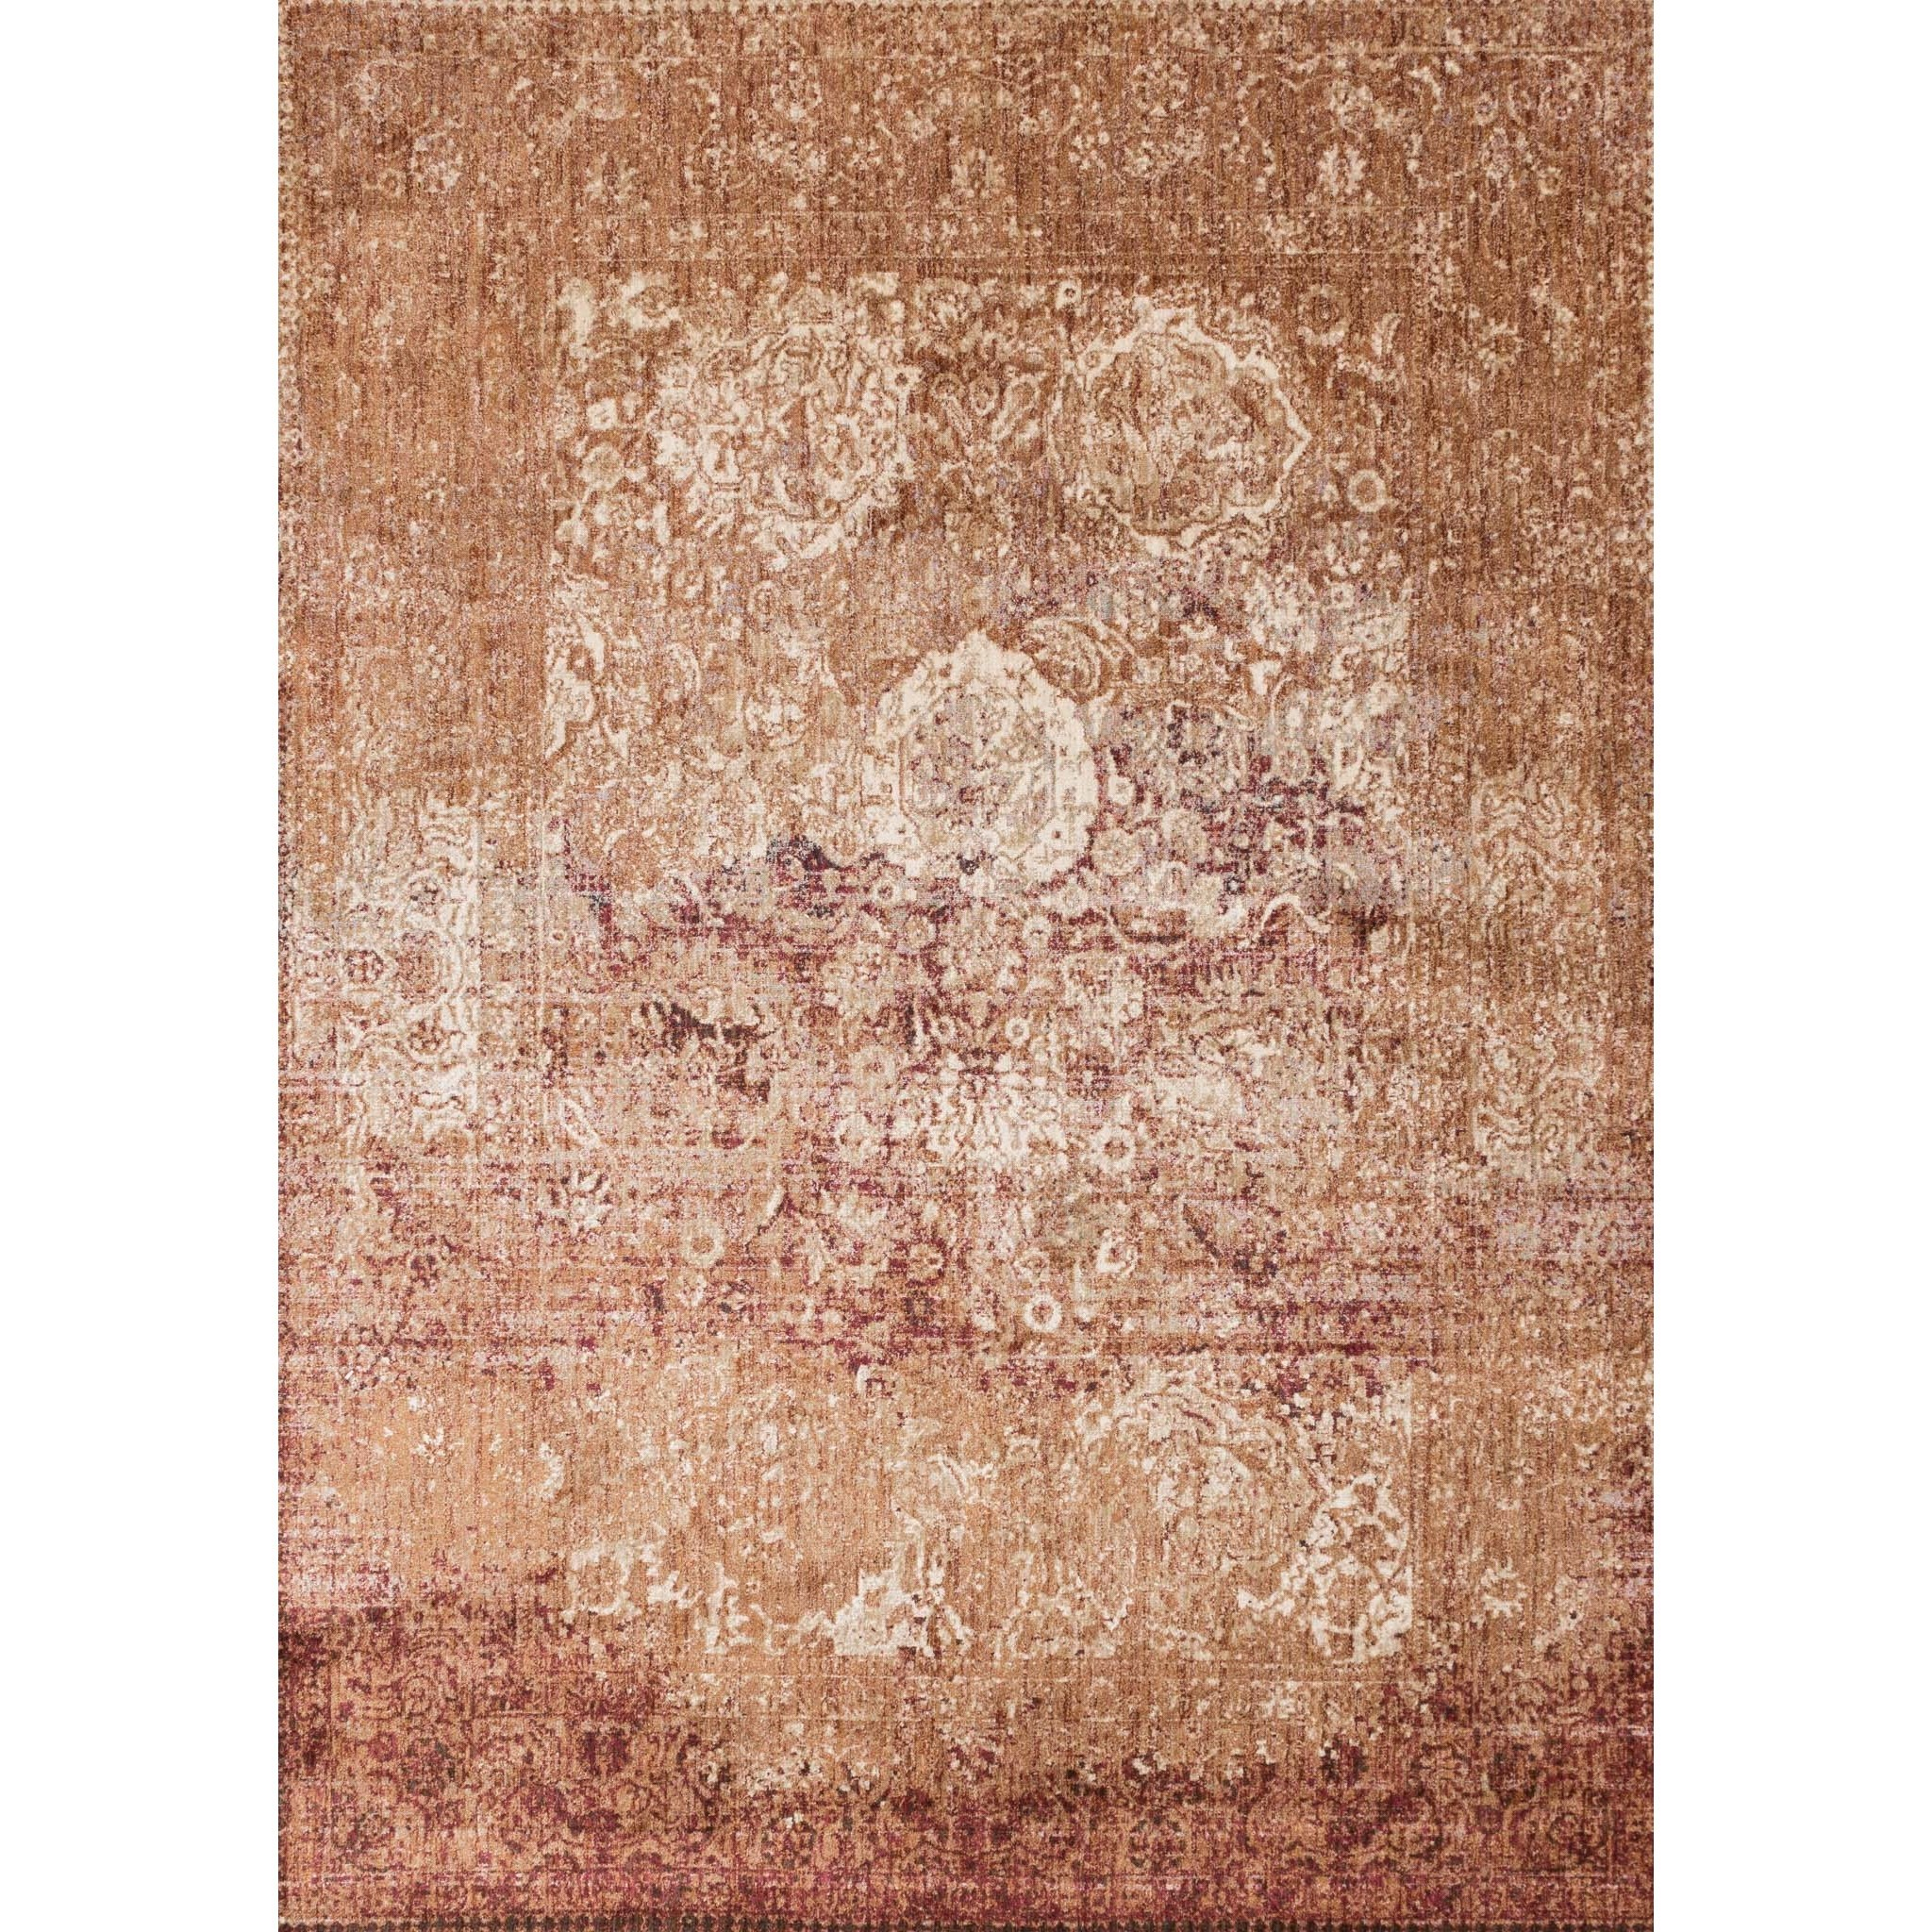 "Anastasia 9'-6"" X 13' Area Rug by Loloi Rugs at Sprintz Furniture"